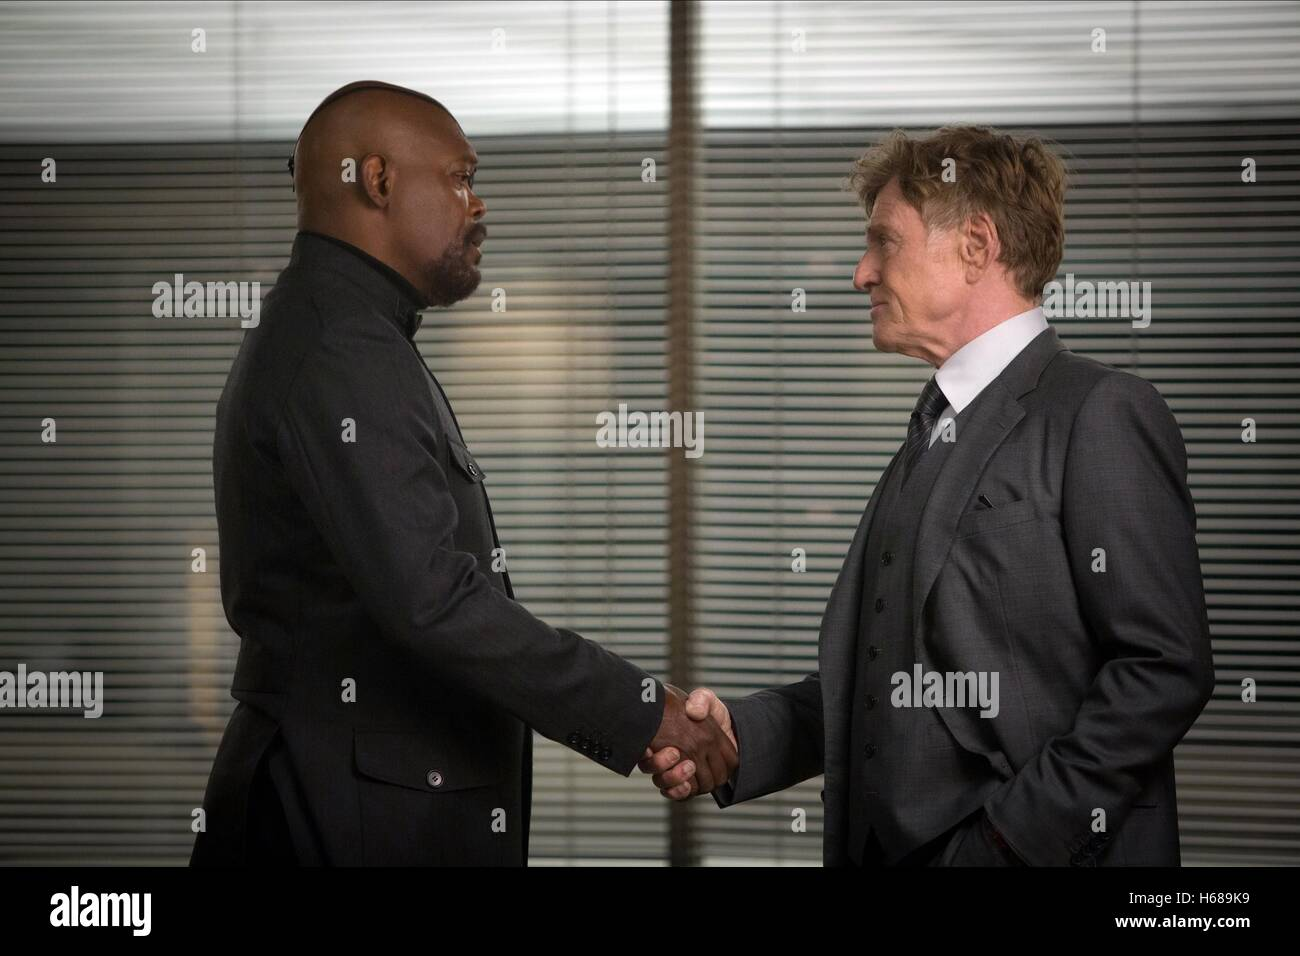 SAMUEL L. JACKSON & ROBERT REDFORD CAPTAIN AMERICA: THE WINTER SOLDIER (2014) - Stock Image